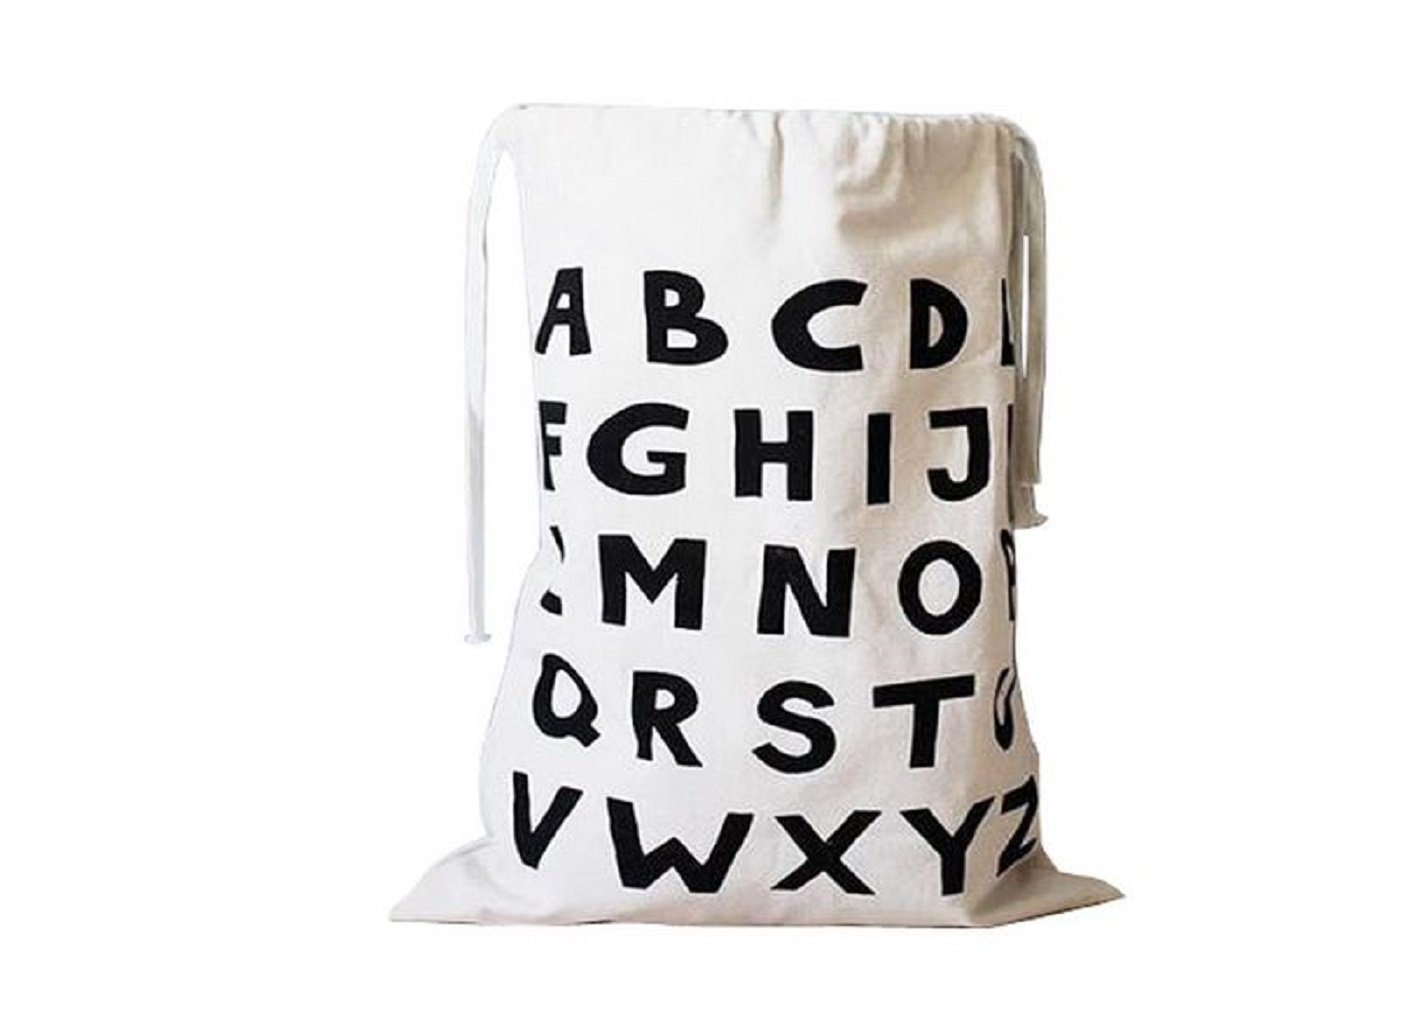 Canvas Laundry Large Drawstring Alphabet Bag Hamper Organizers Storage for Kids Toys, Baby Clothing, Children Books, Gift Bag Bg mini